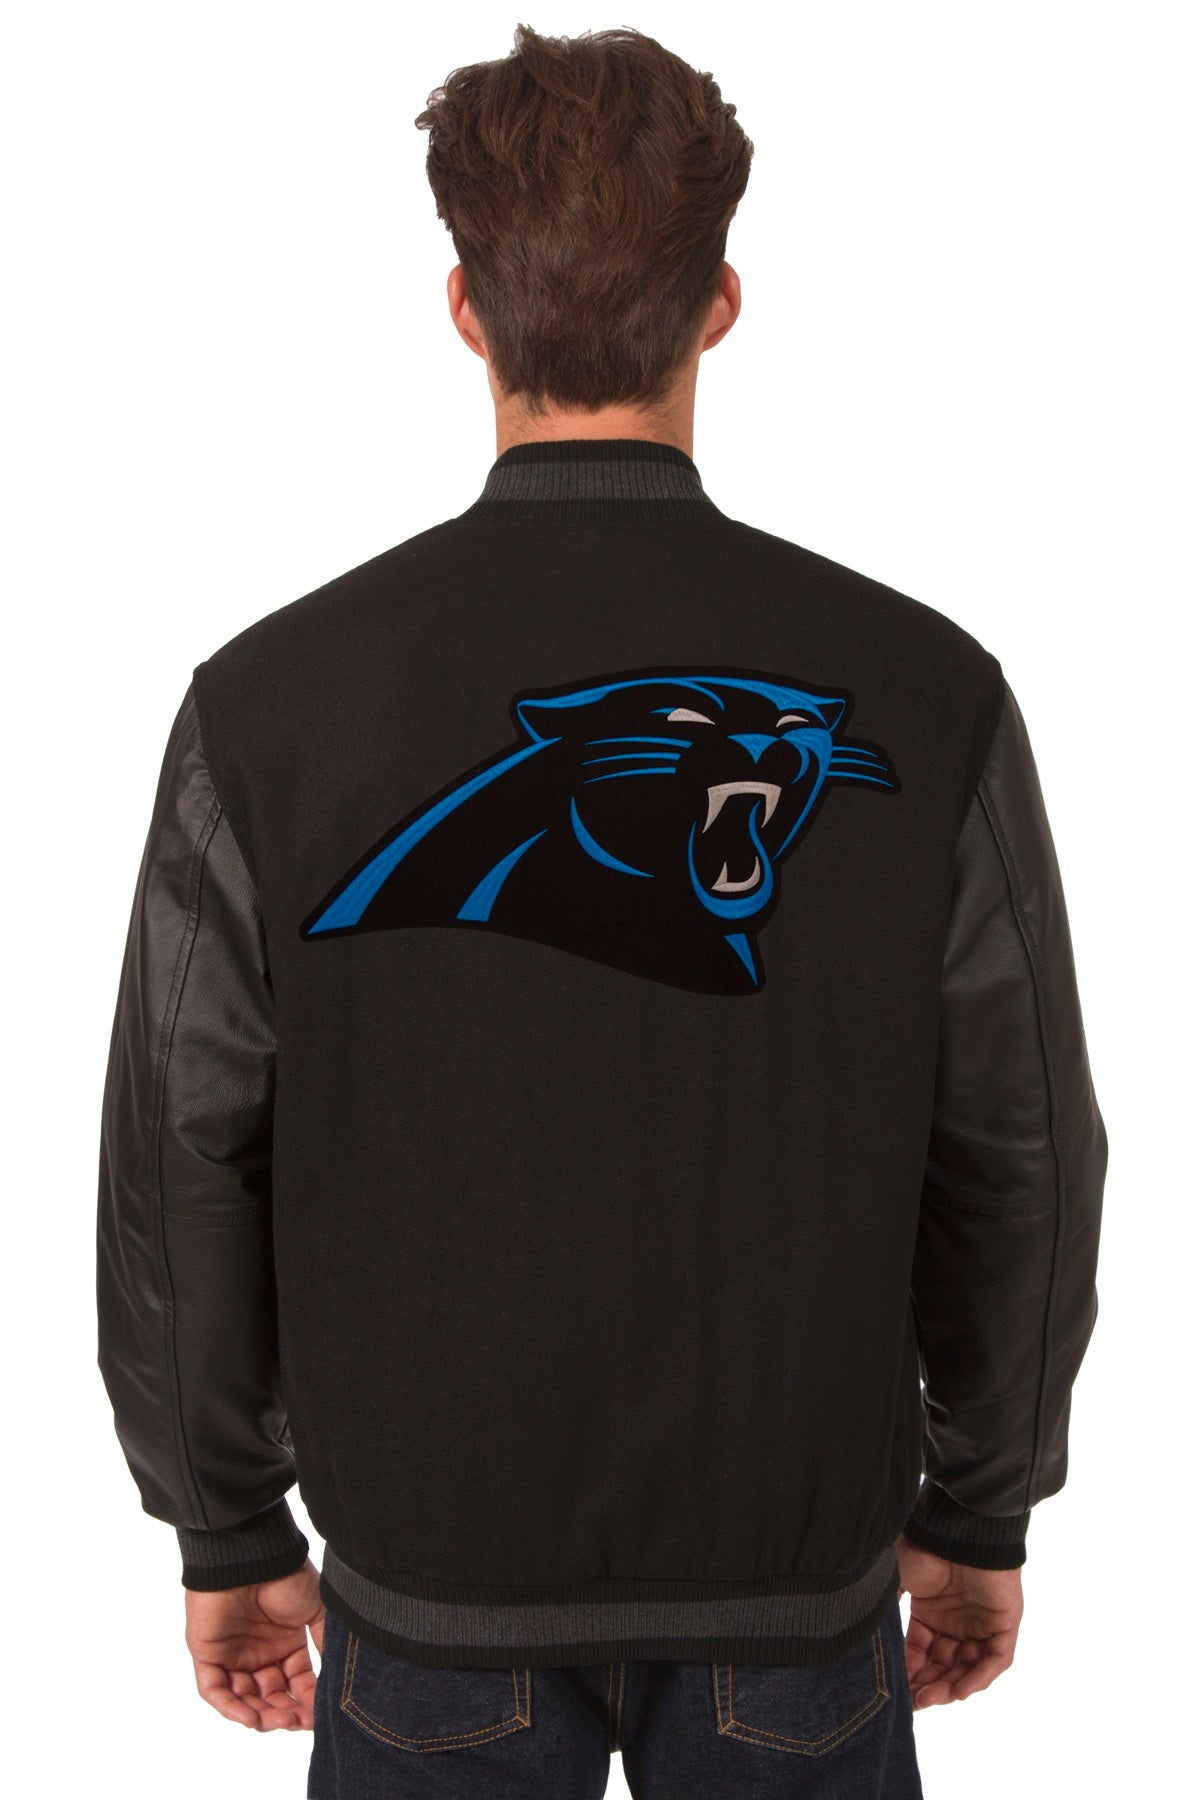 cheap for discount 23565 a0000 Carolina Panthers Wool & Leather Reversible Jacket w ...